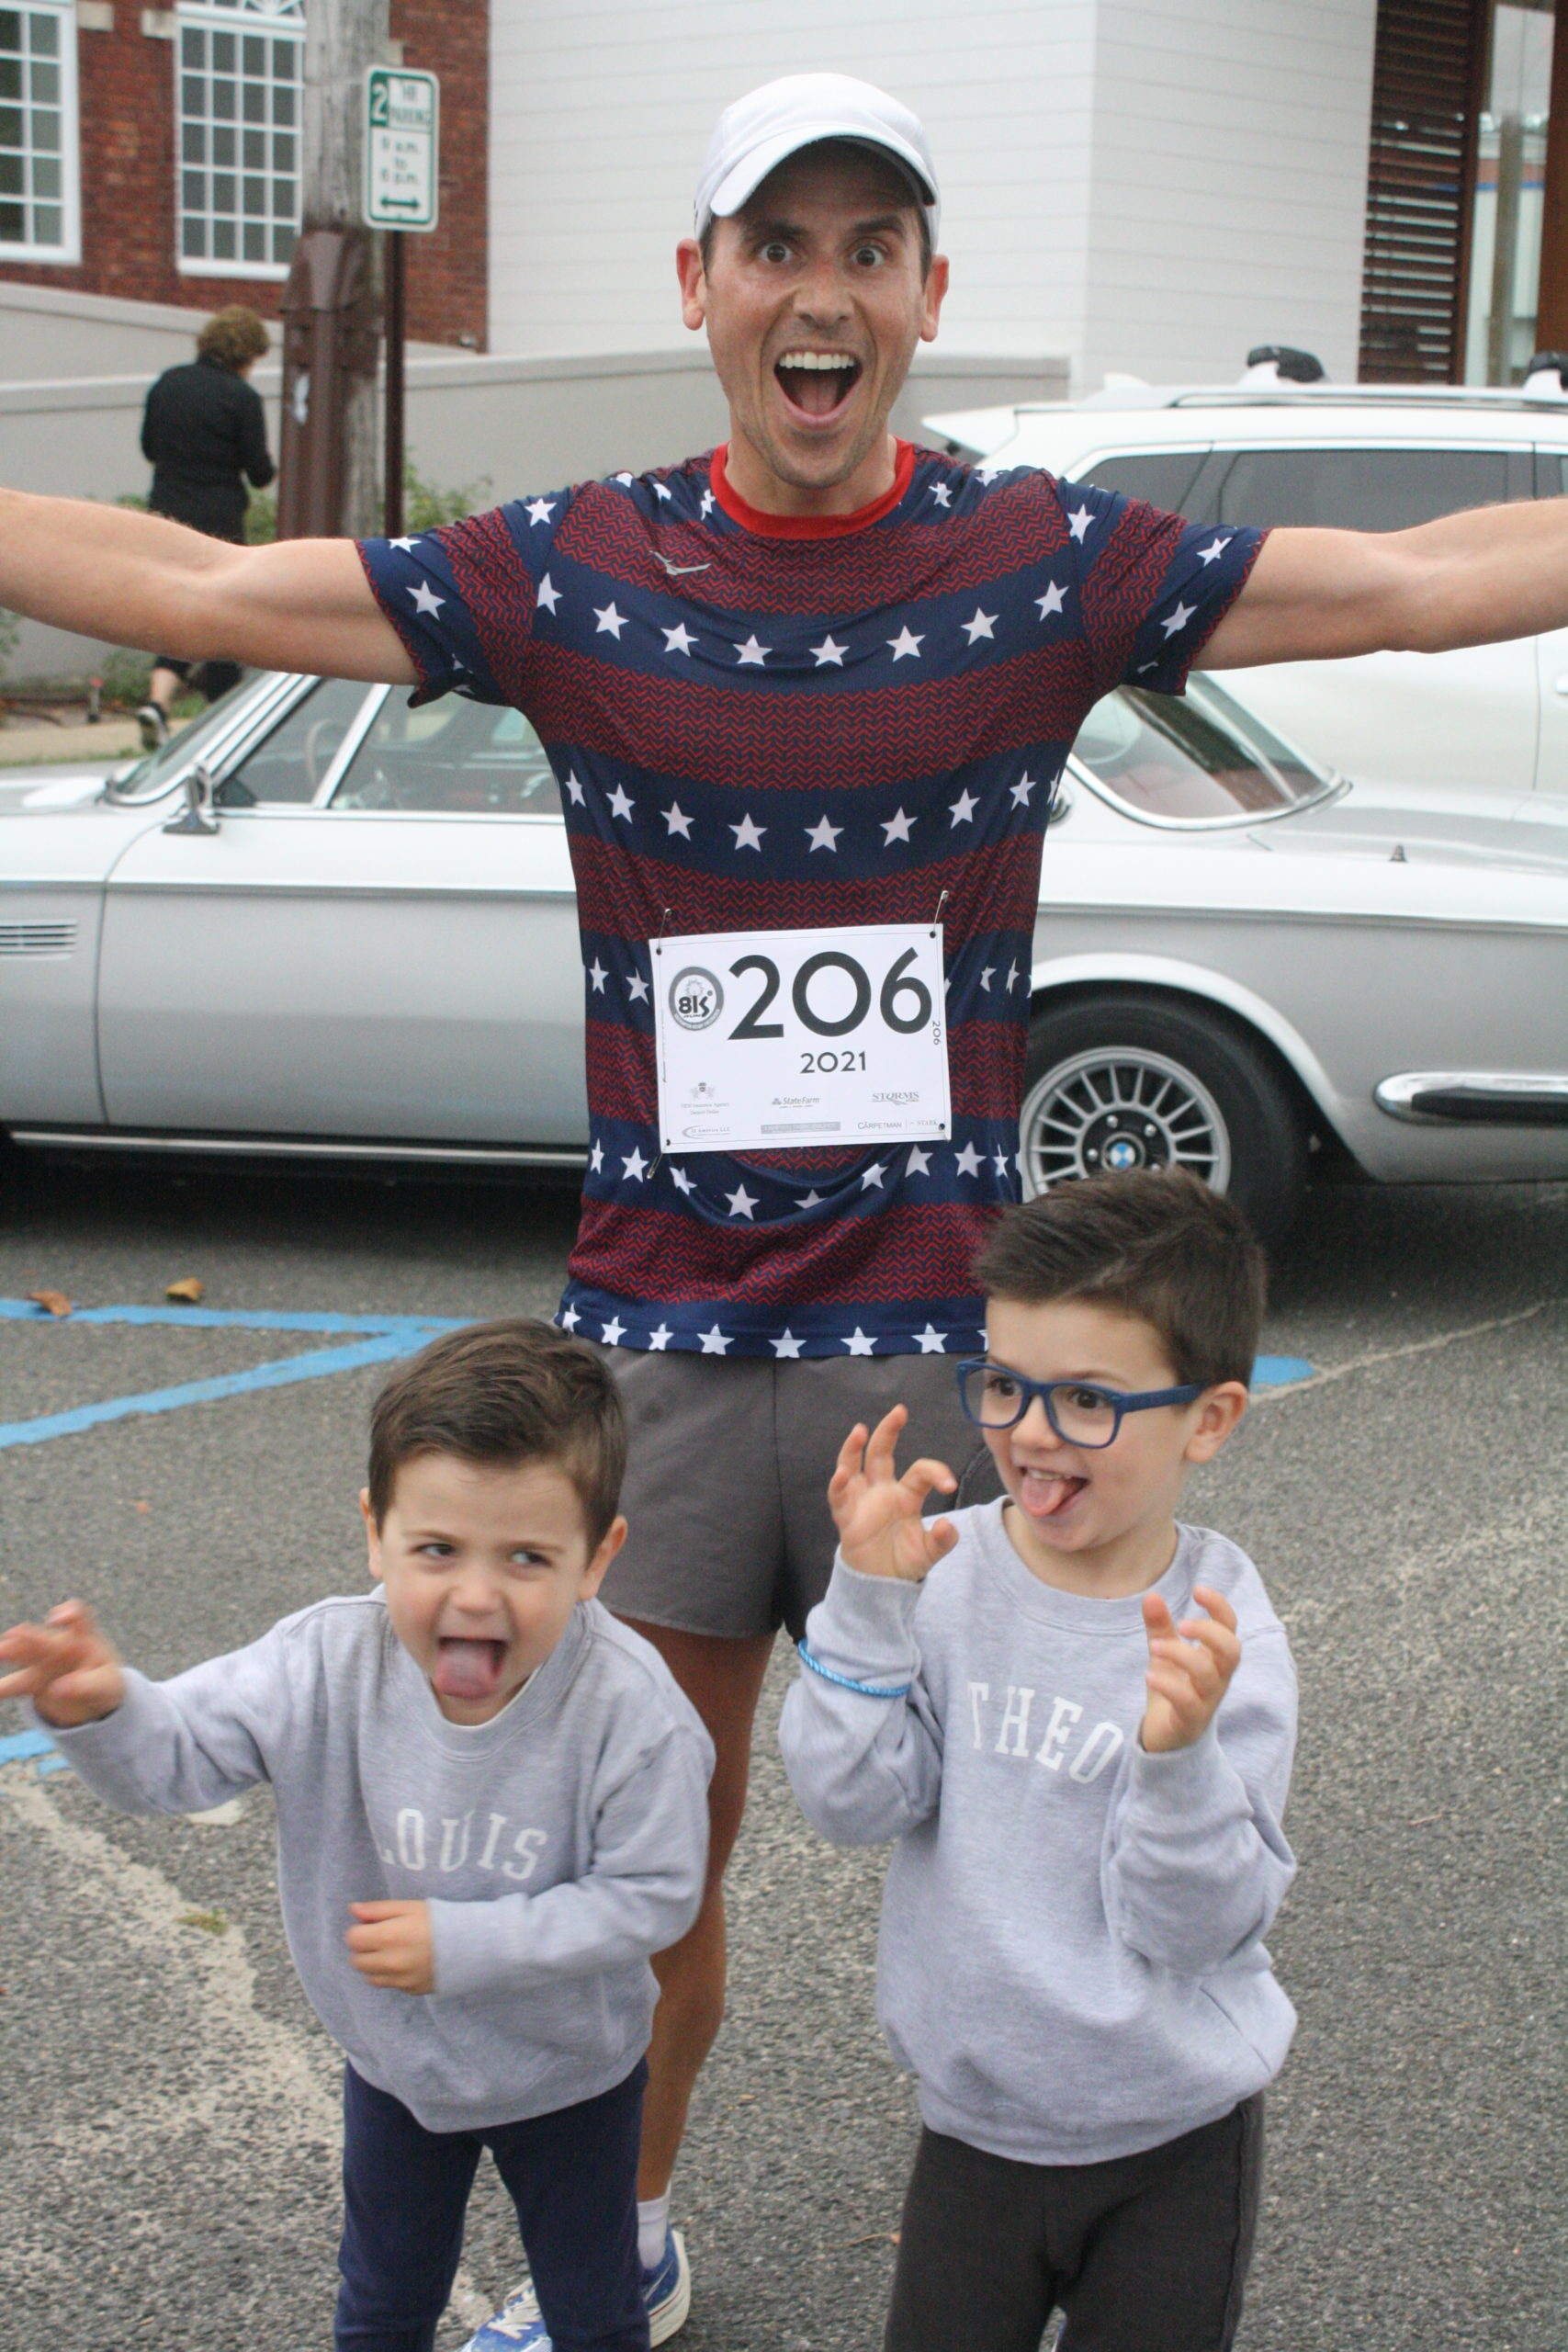 Oz Pearlman after the race with his two young sons.